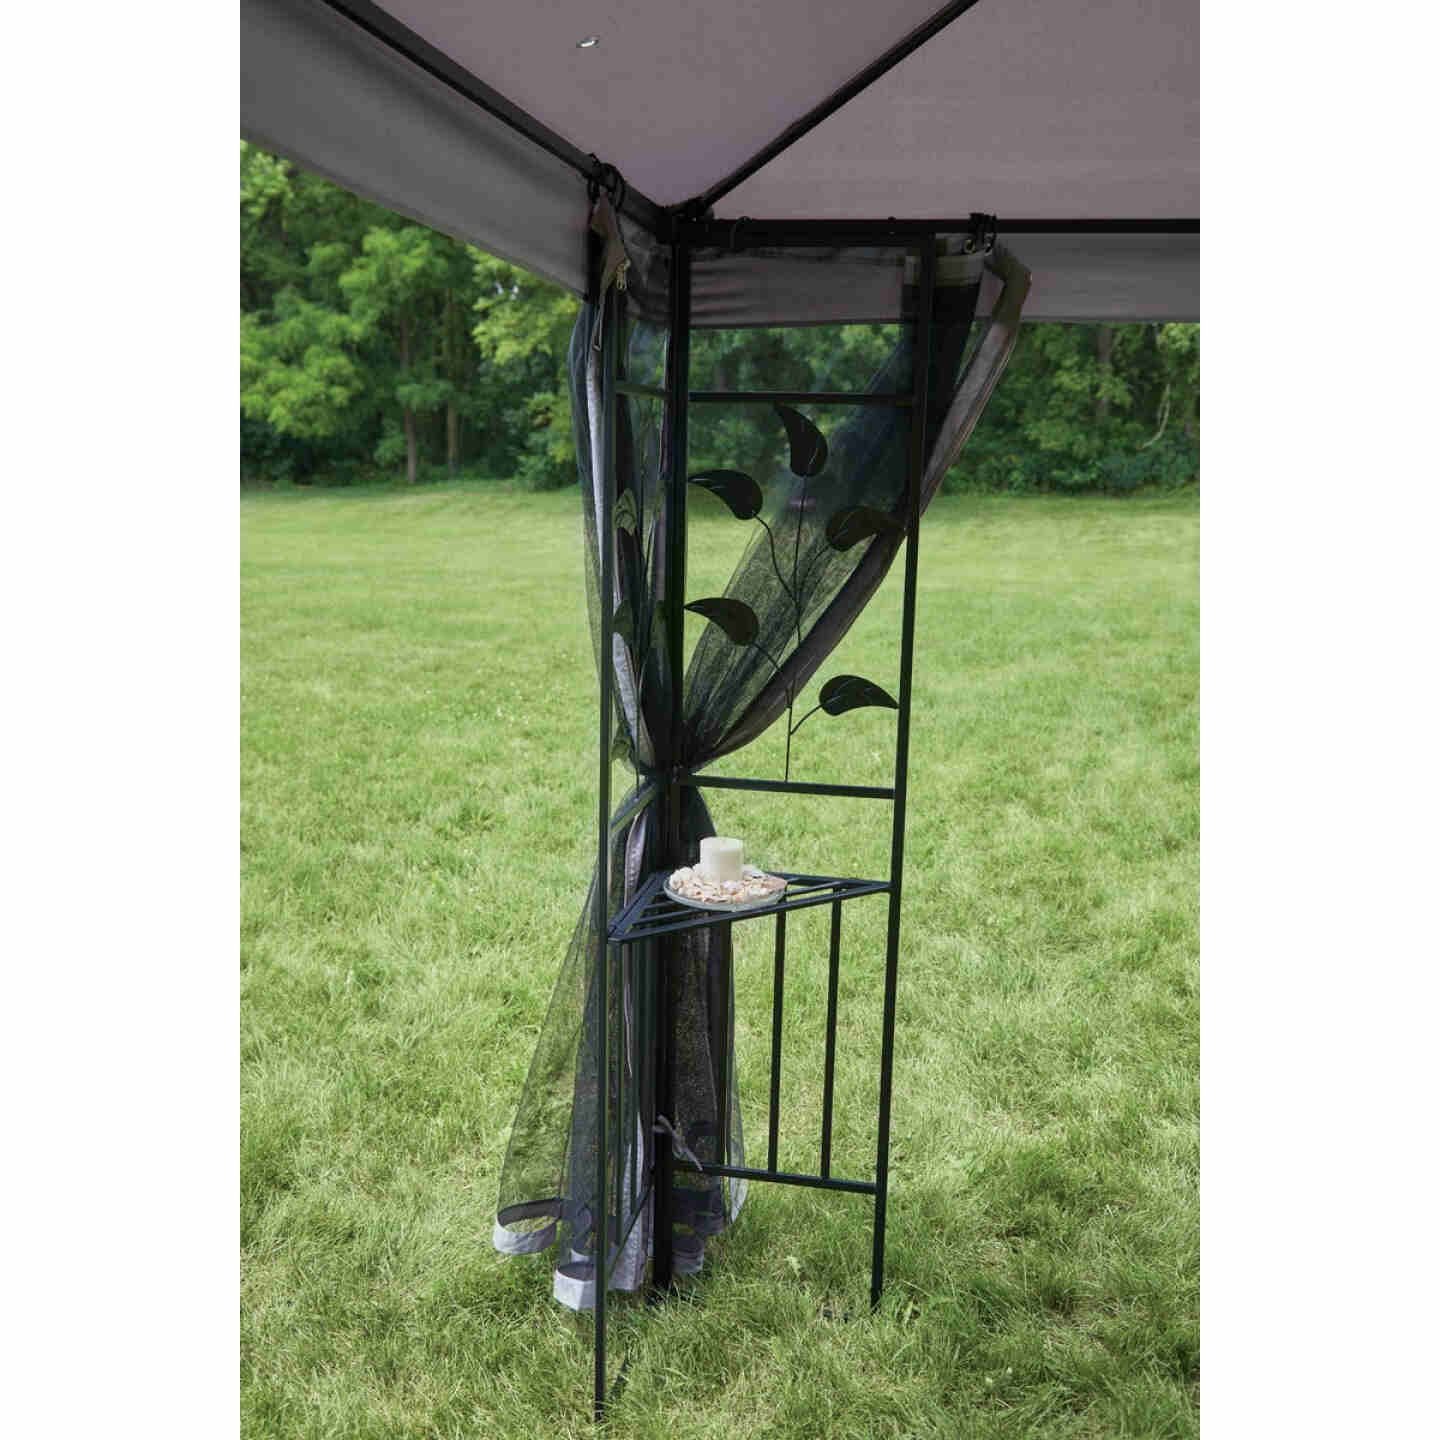 Outdoor Expressions 10 Ft. x 10 Ft. Gray & Black Steel Gazebo with Sides Image 5